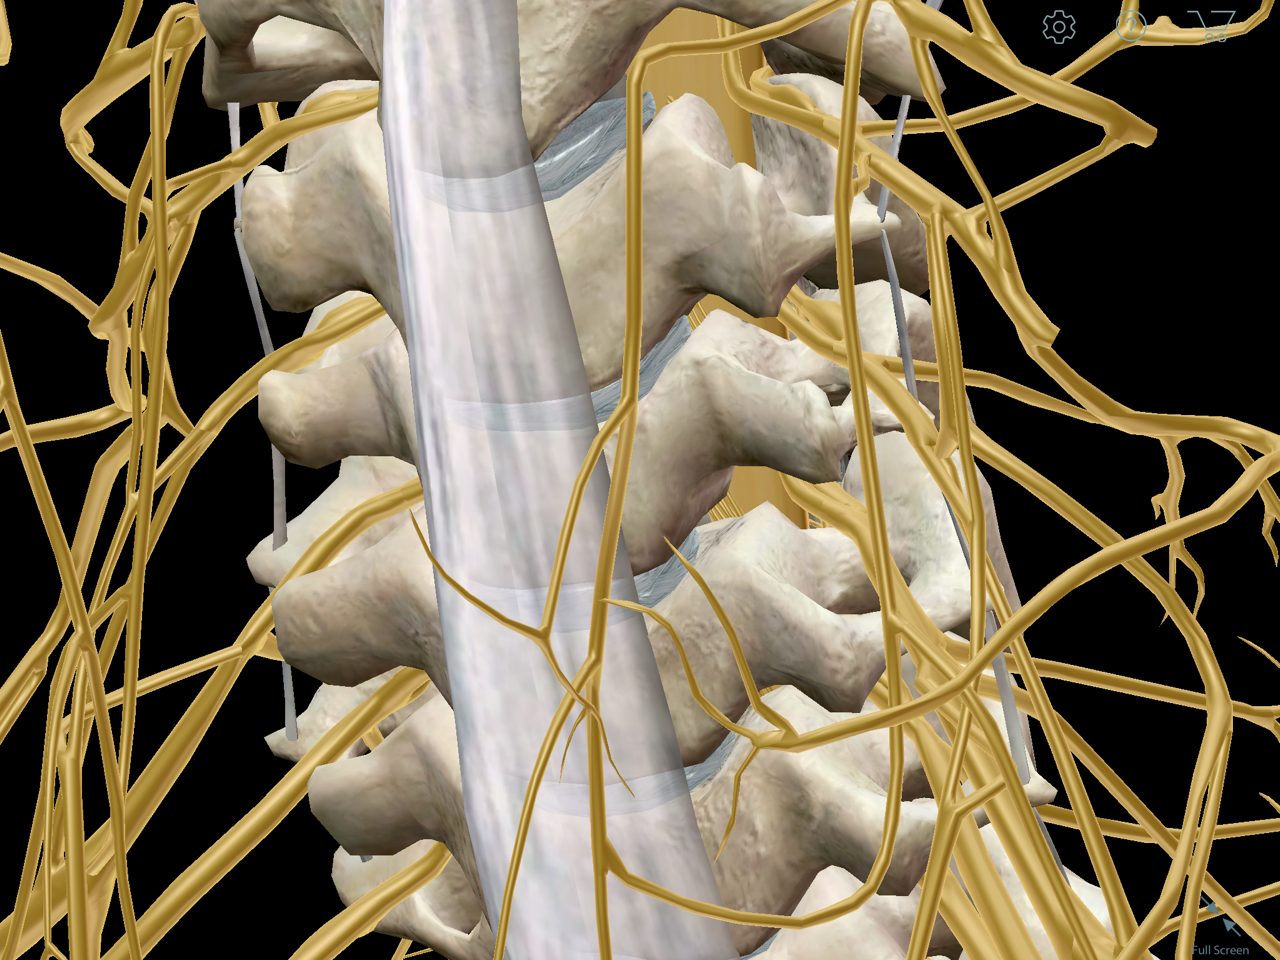 Cervical vertebrae and peripheral nerves